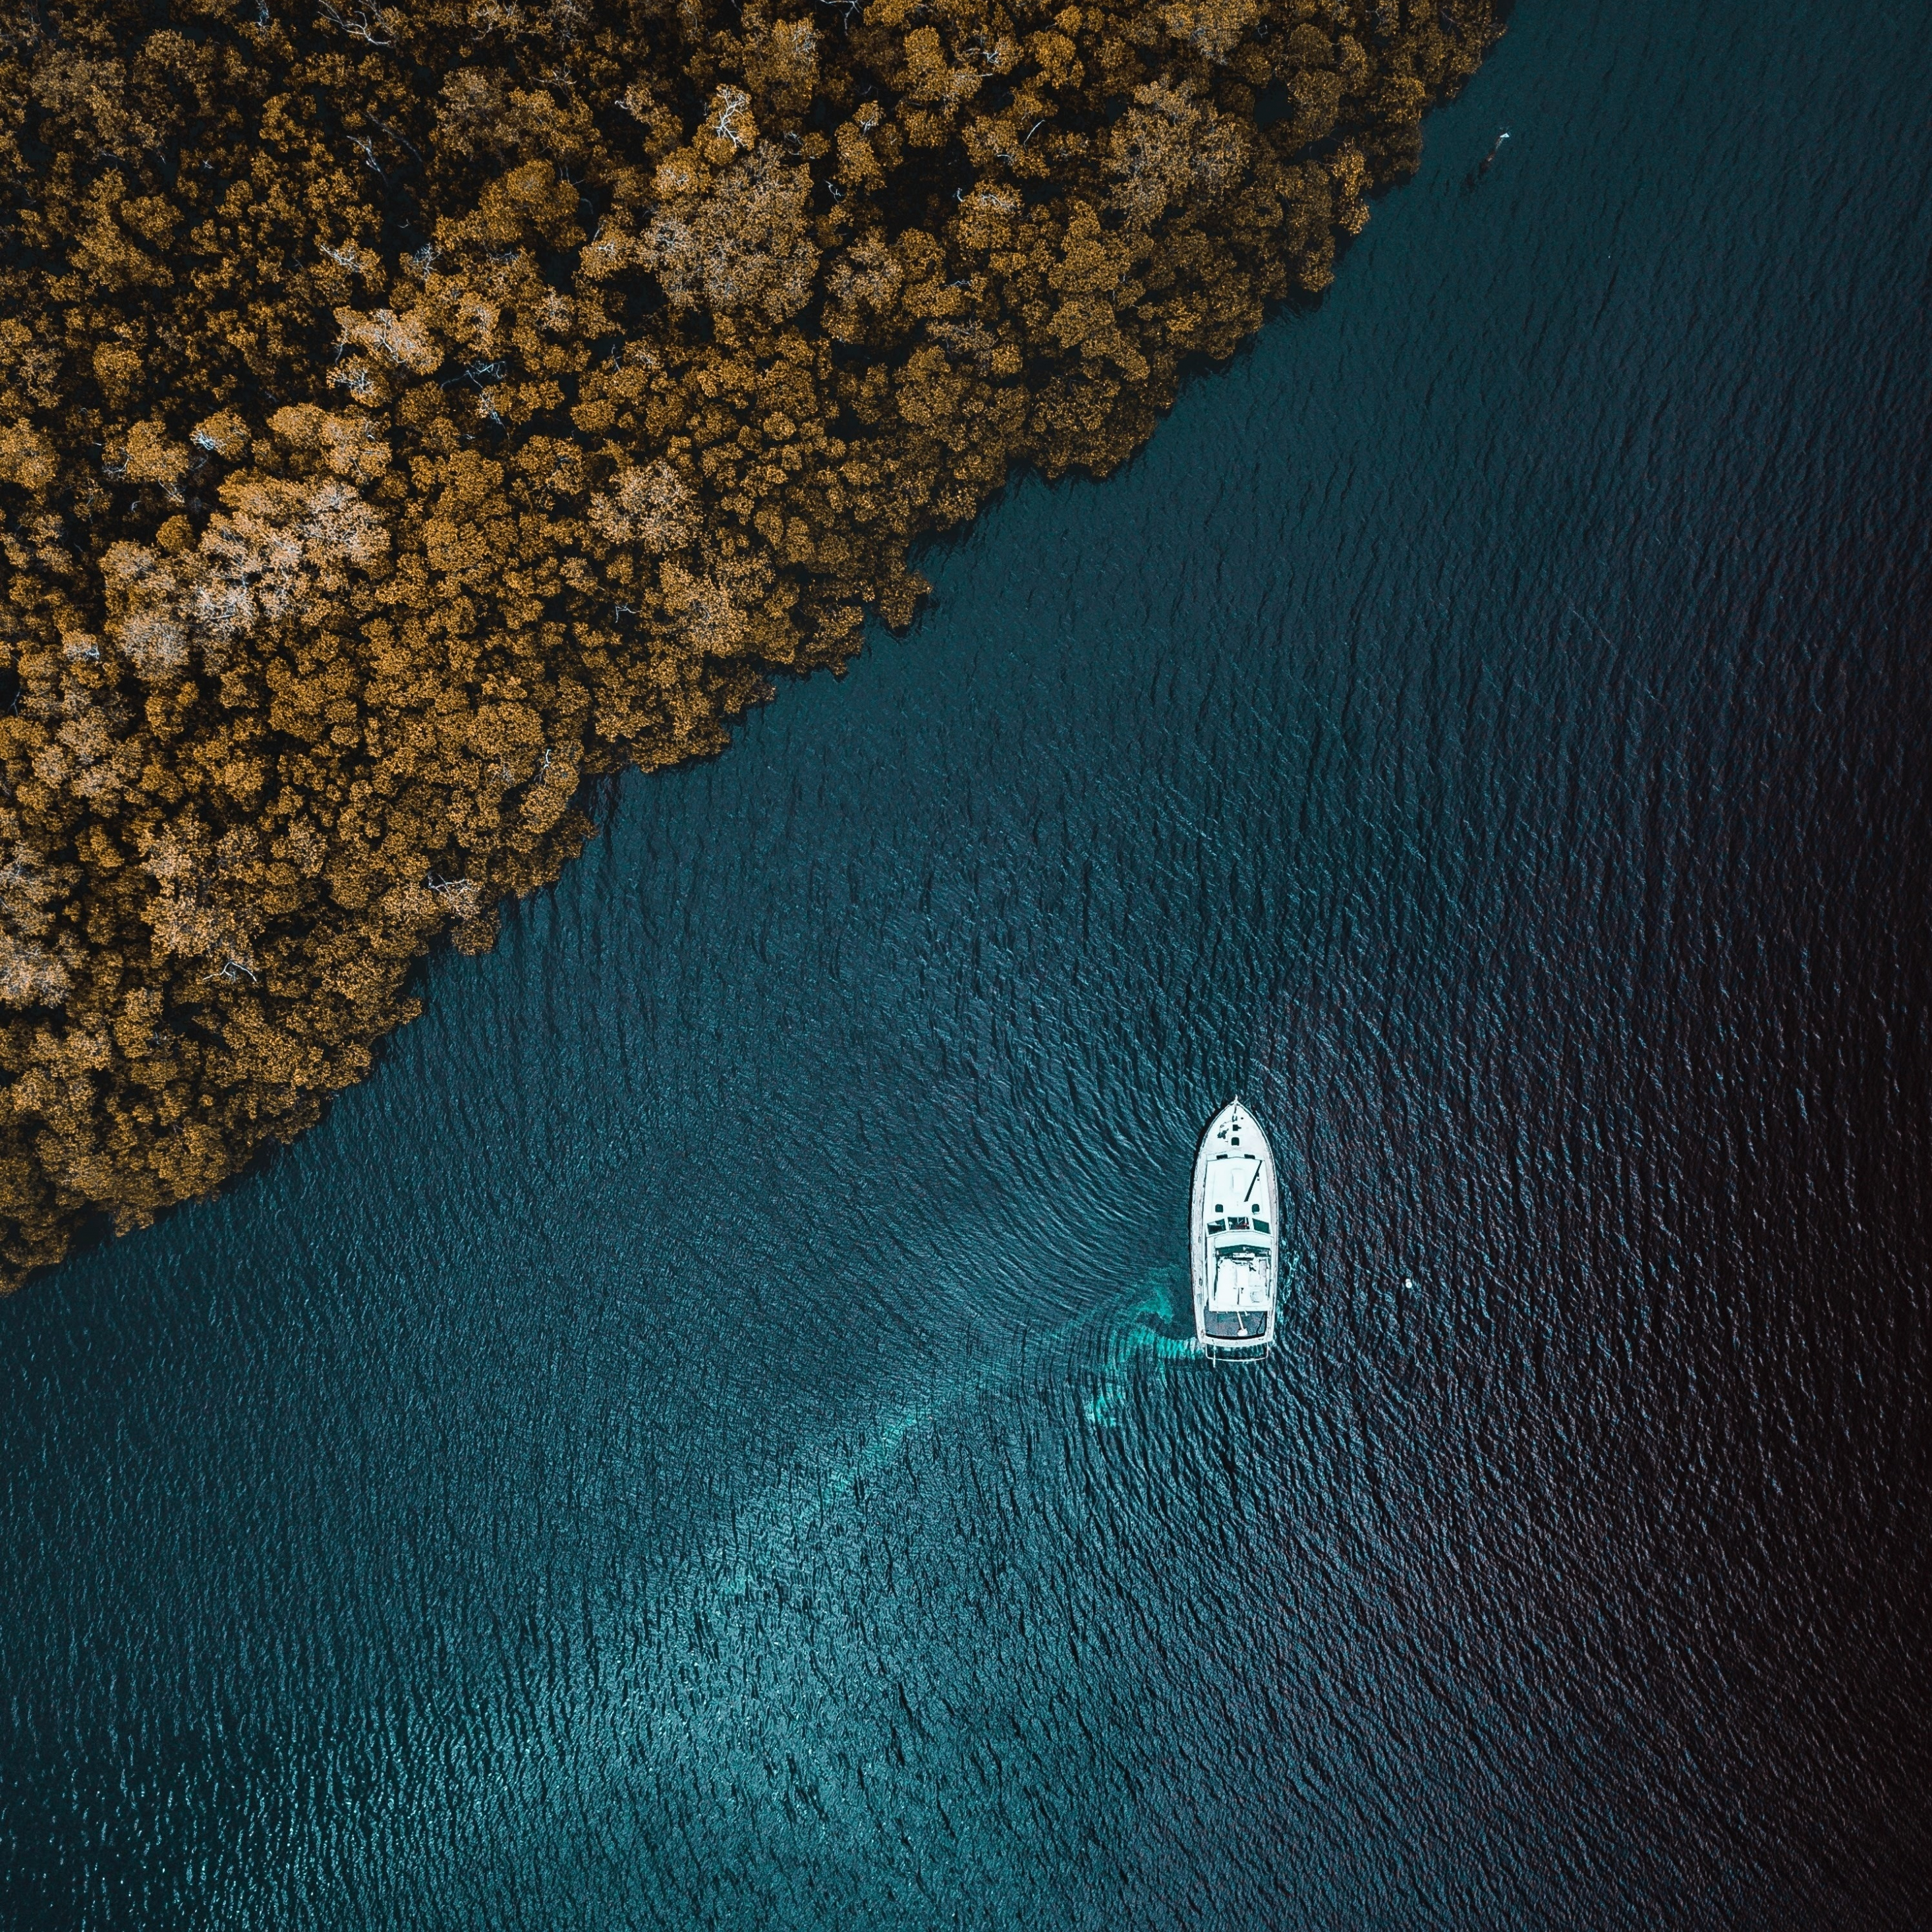 Aerial view, sea, forest, boat, 2932x2932 wallpaper